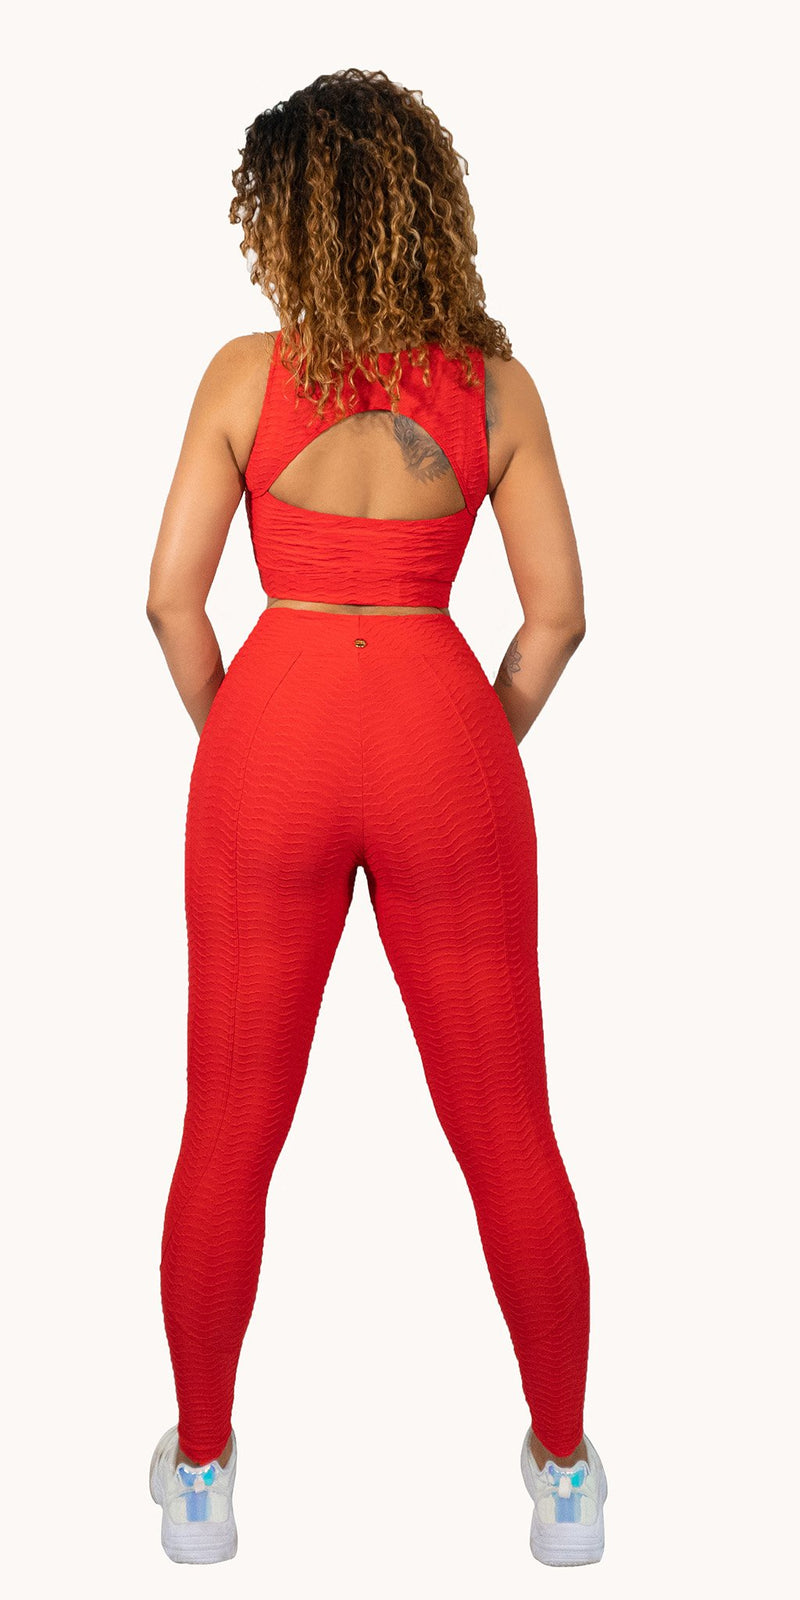 Love Yourself Top in Red by Alemana